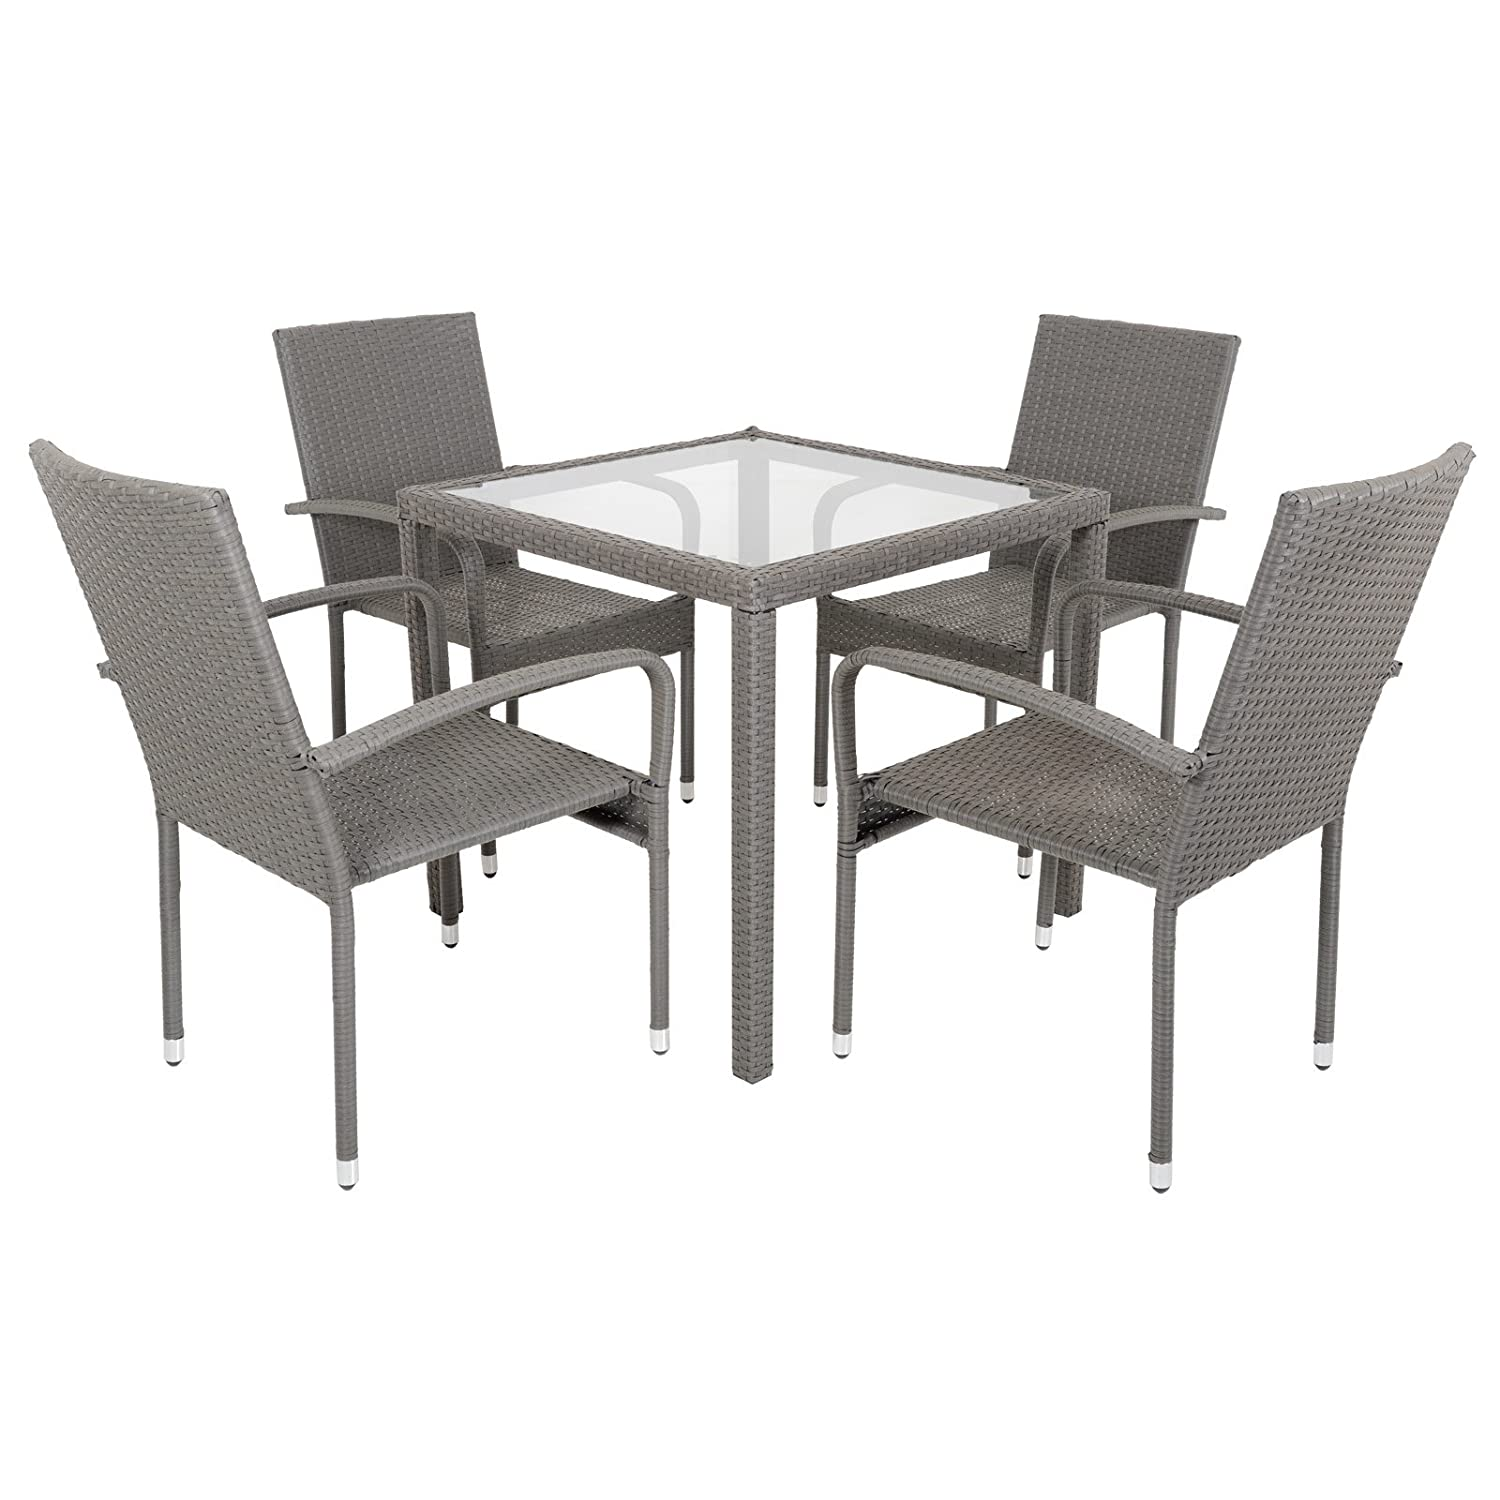 Garden Modena Rattan Wicker Dining Table Set With Four Chairs